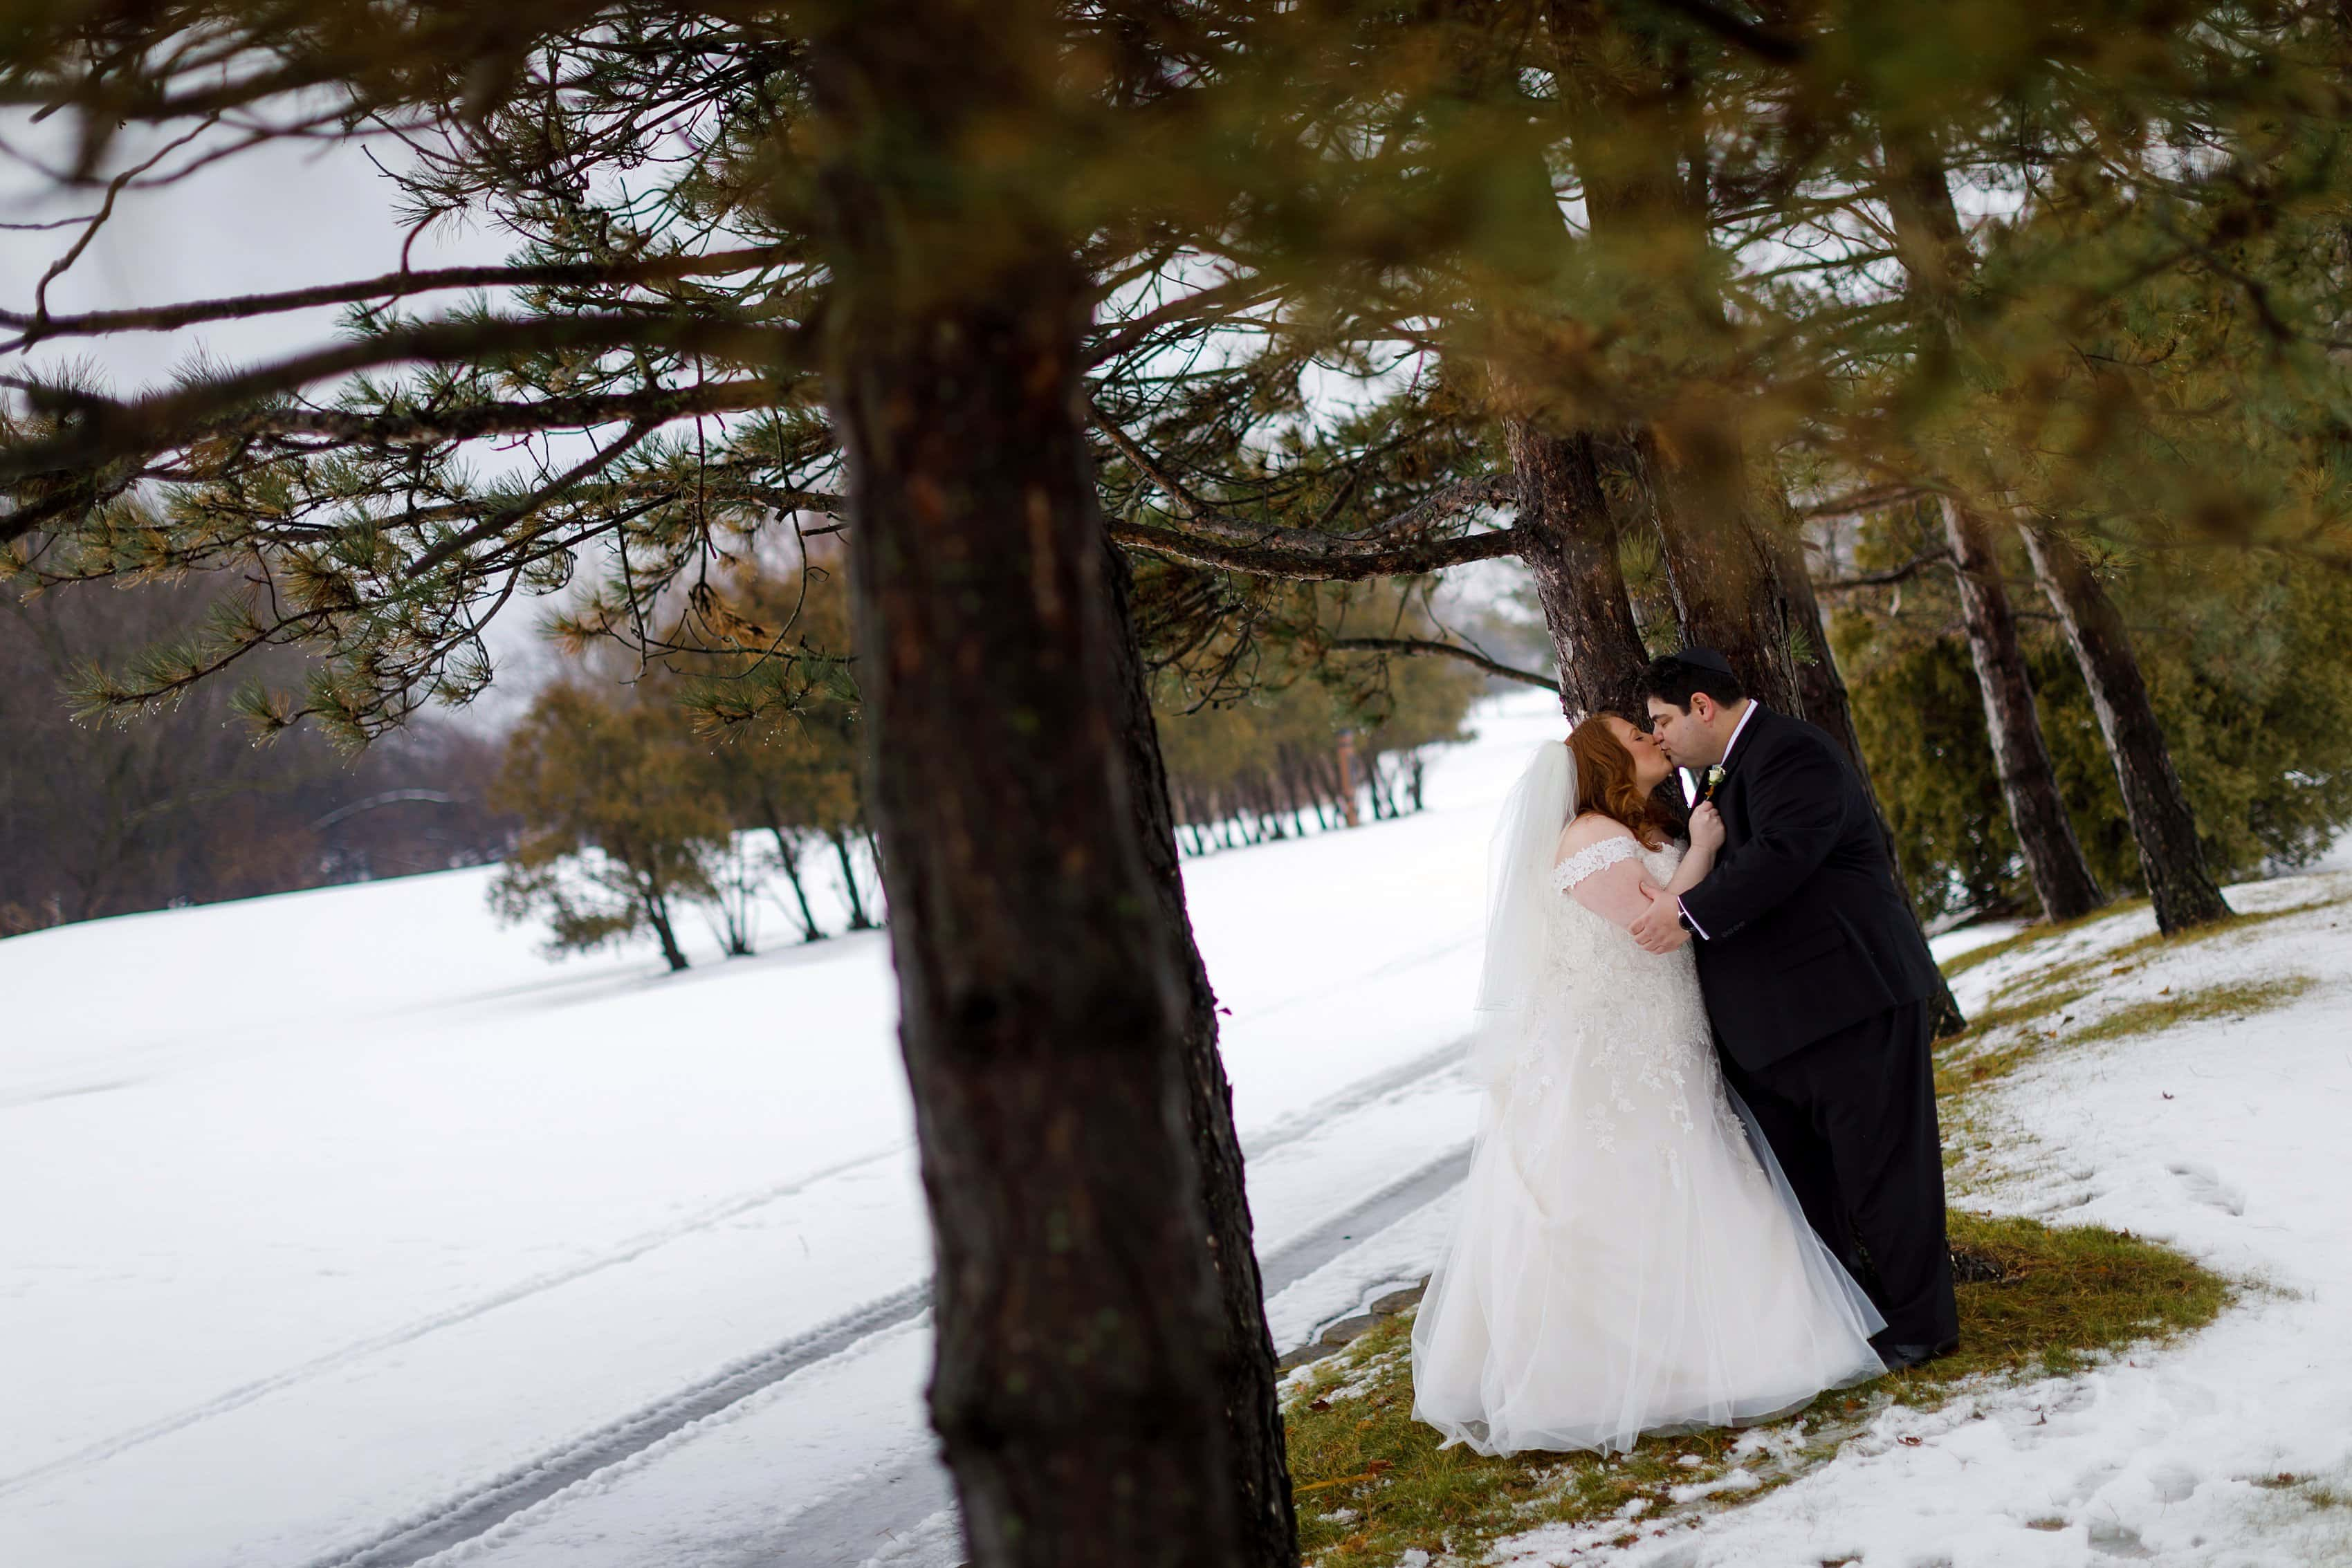 bride and groom kiss under pine tree branches during winter wedding at Lincolnshire Marriott Resort